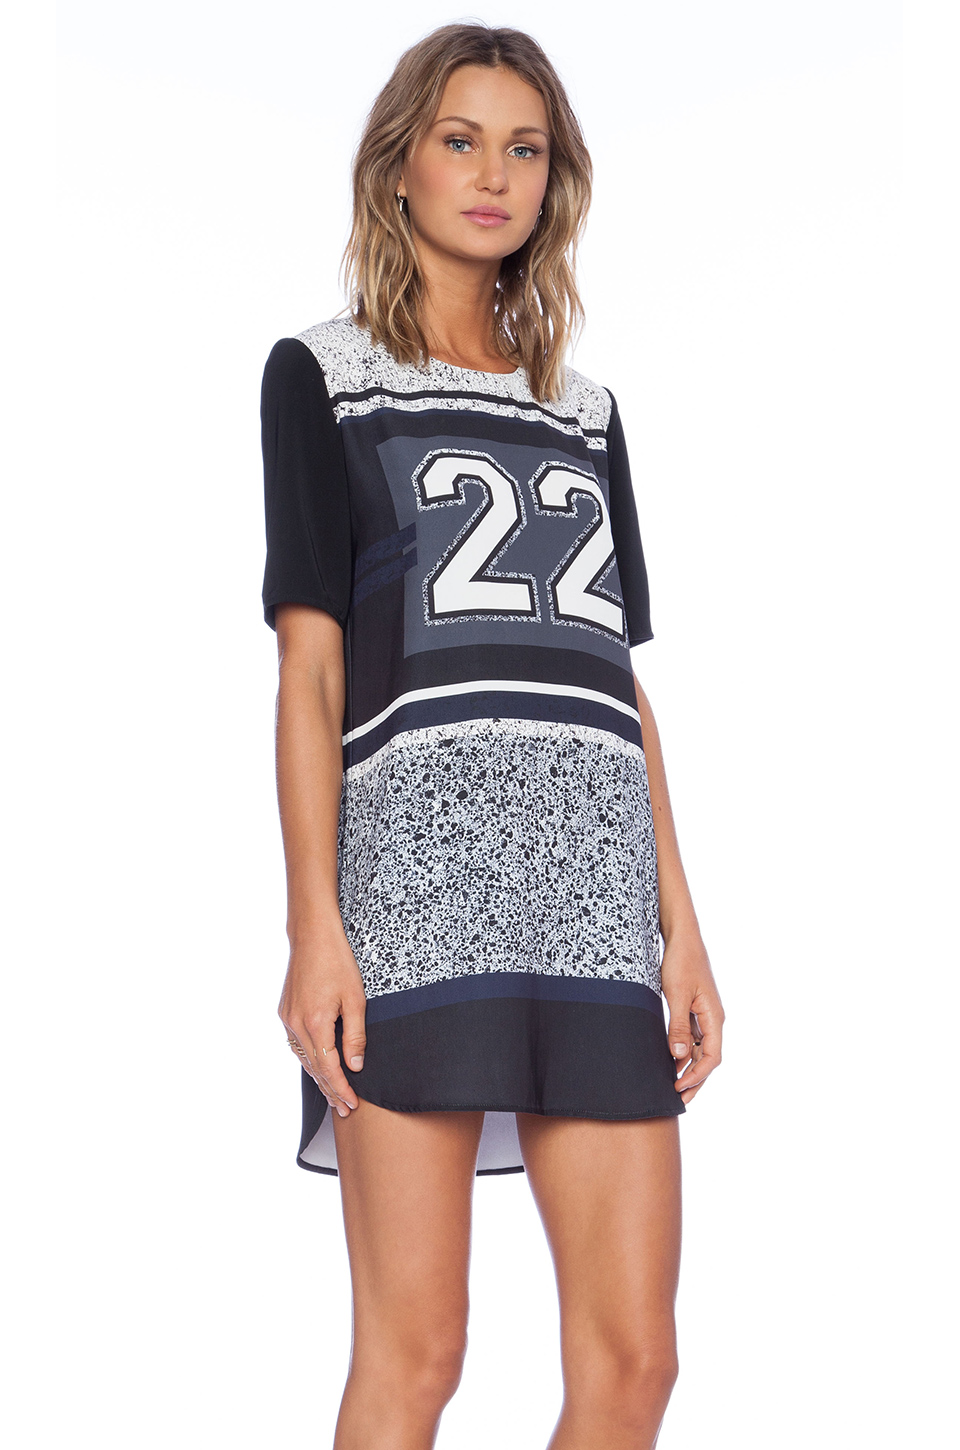 Finders keepers good fortune dress in 22 print from revolveclothing.com